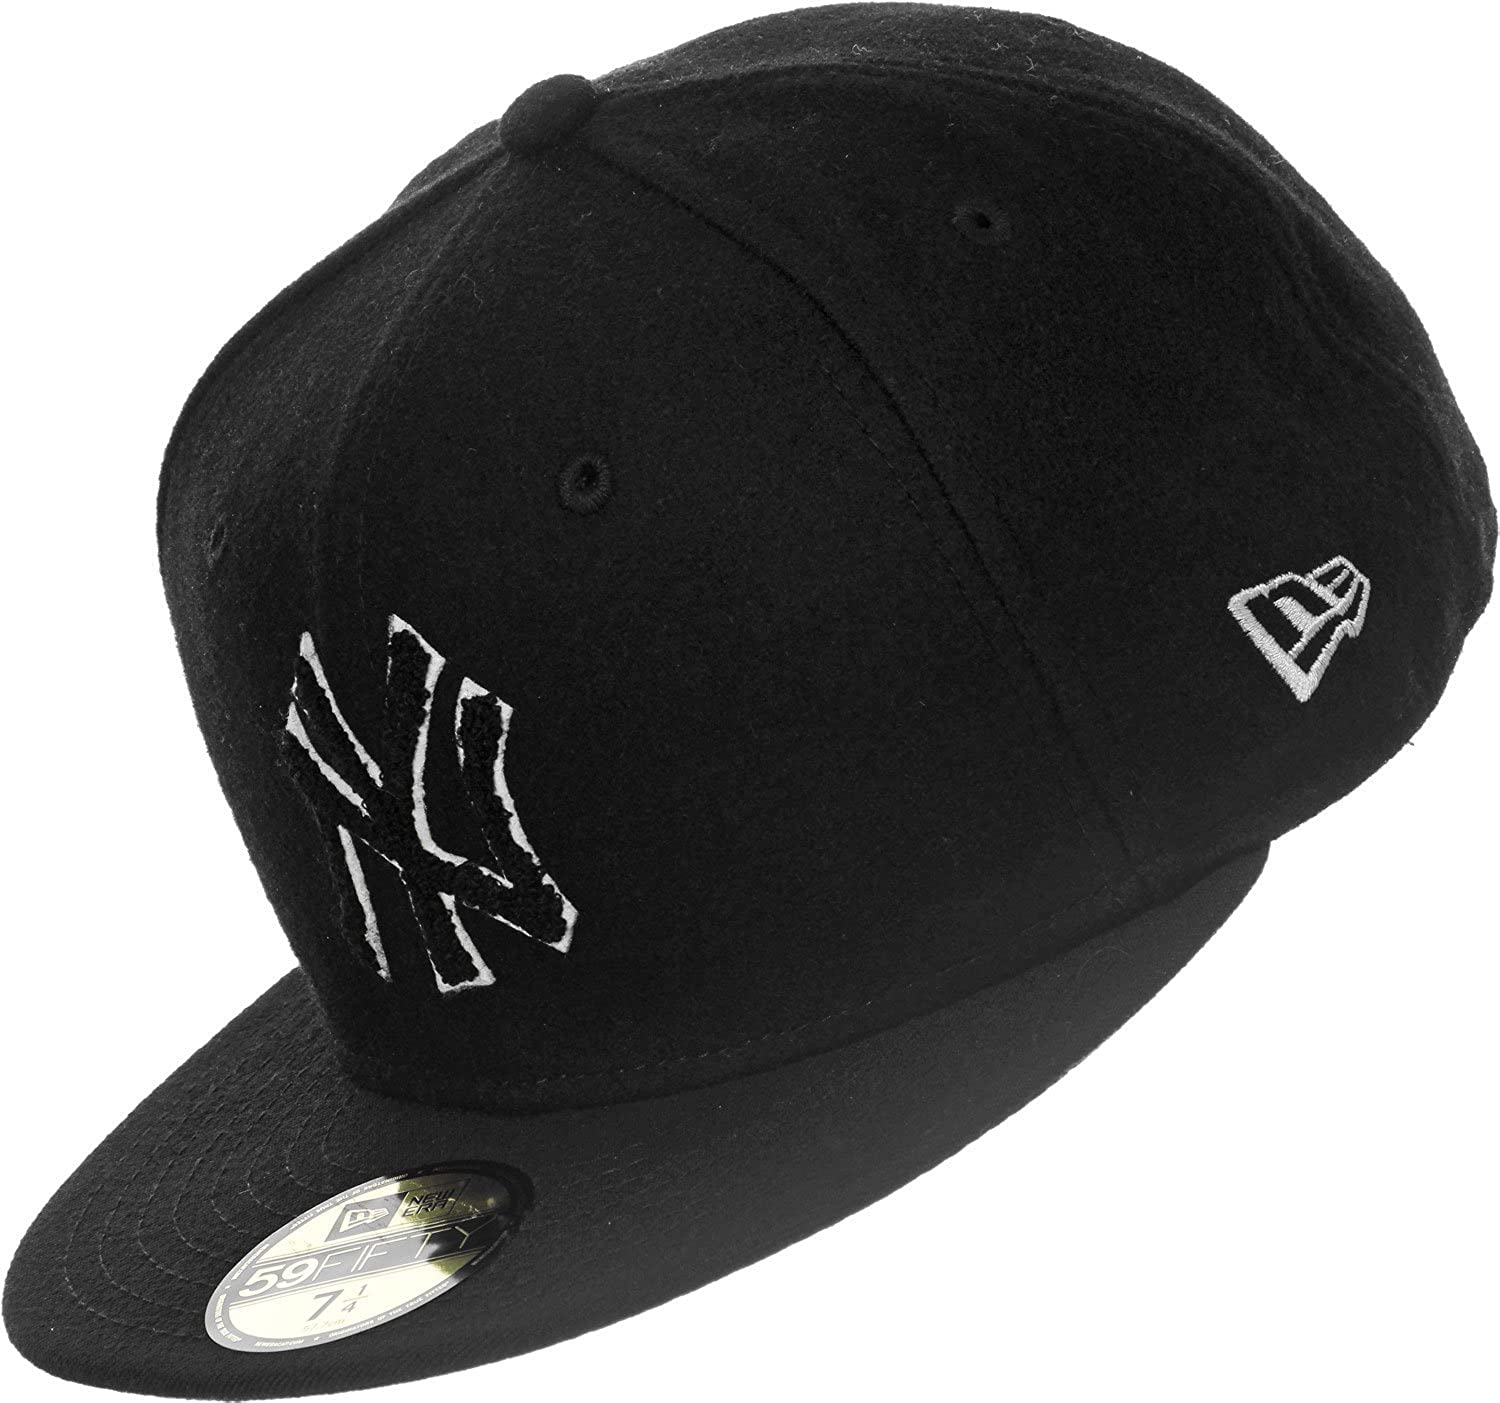 New Era Black-Optic White New York Yankees Team Melton Fitted Cap  New Era   Amazon.co.uk  Clothing aa4b16c820a0